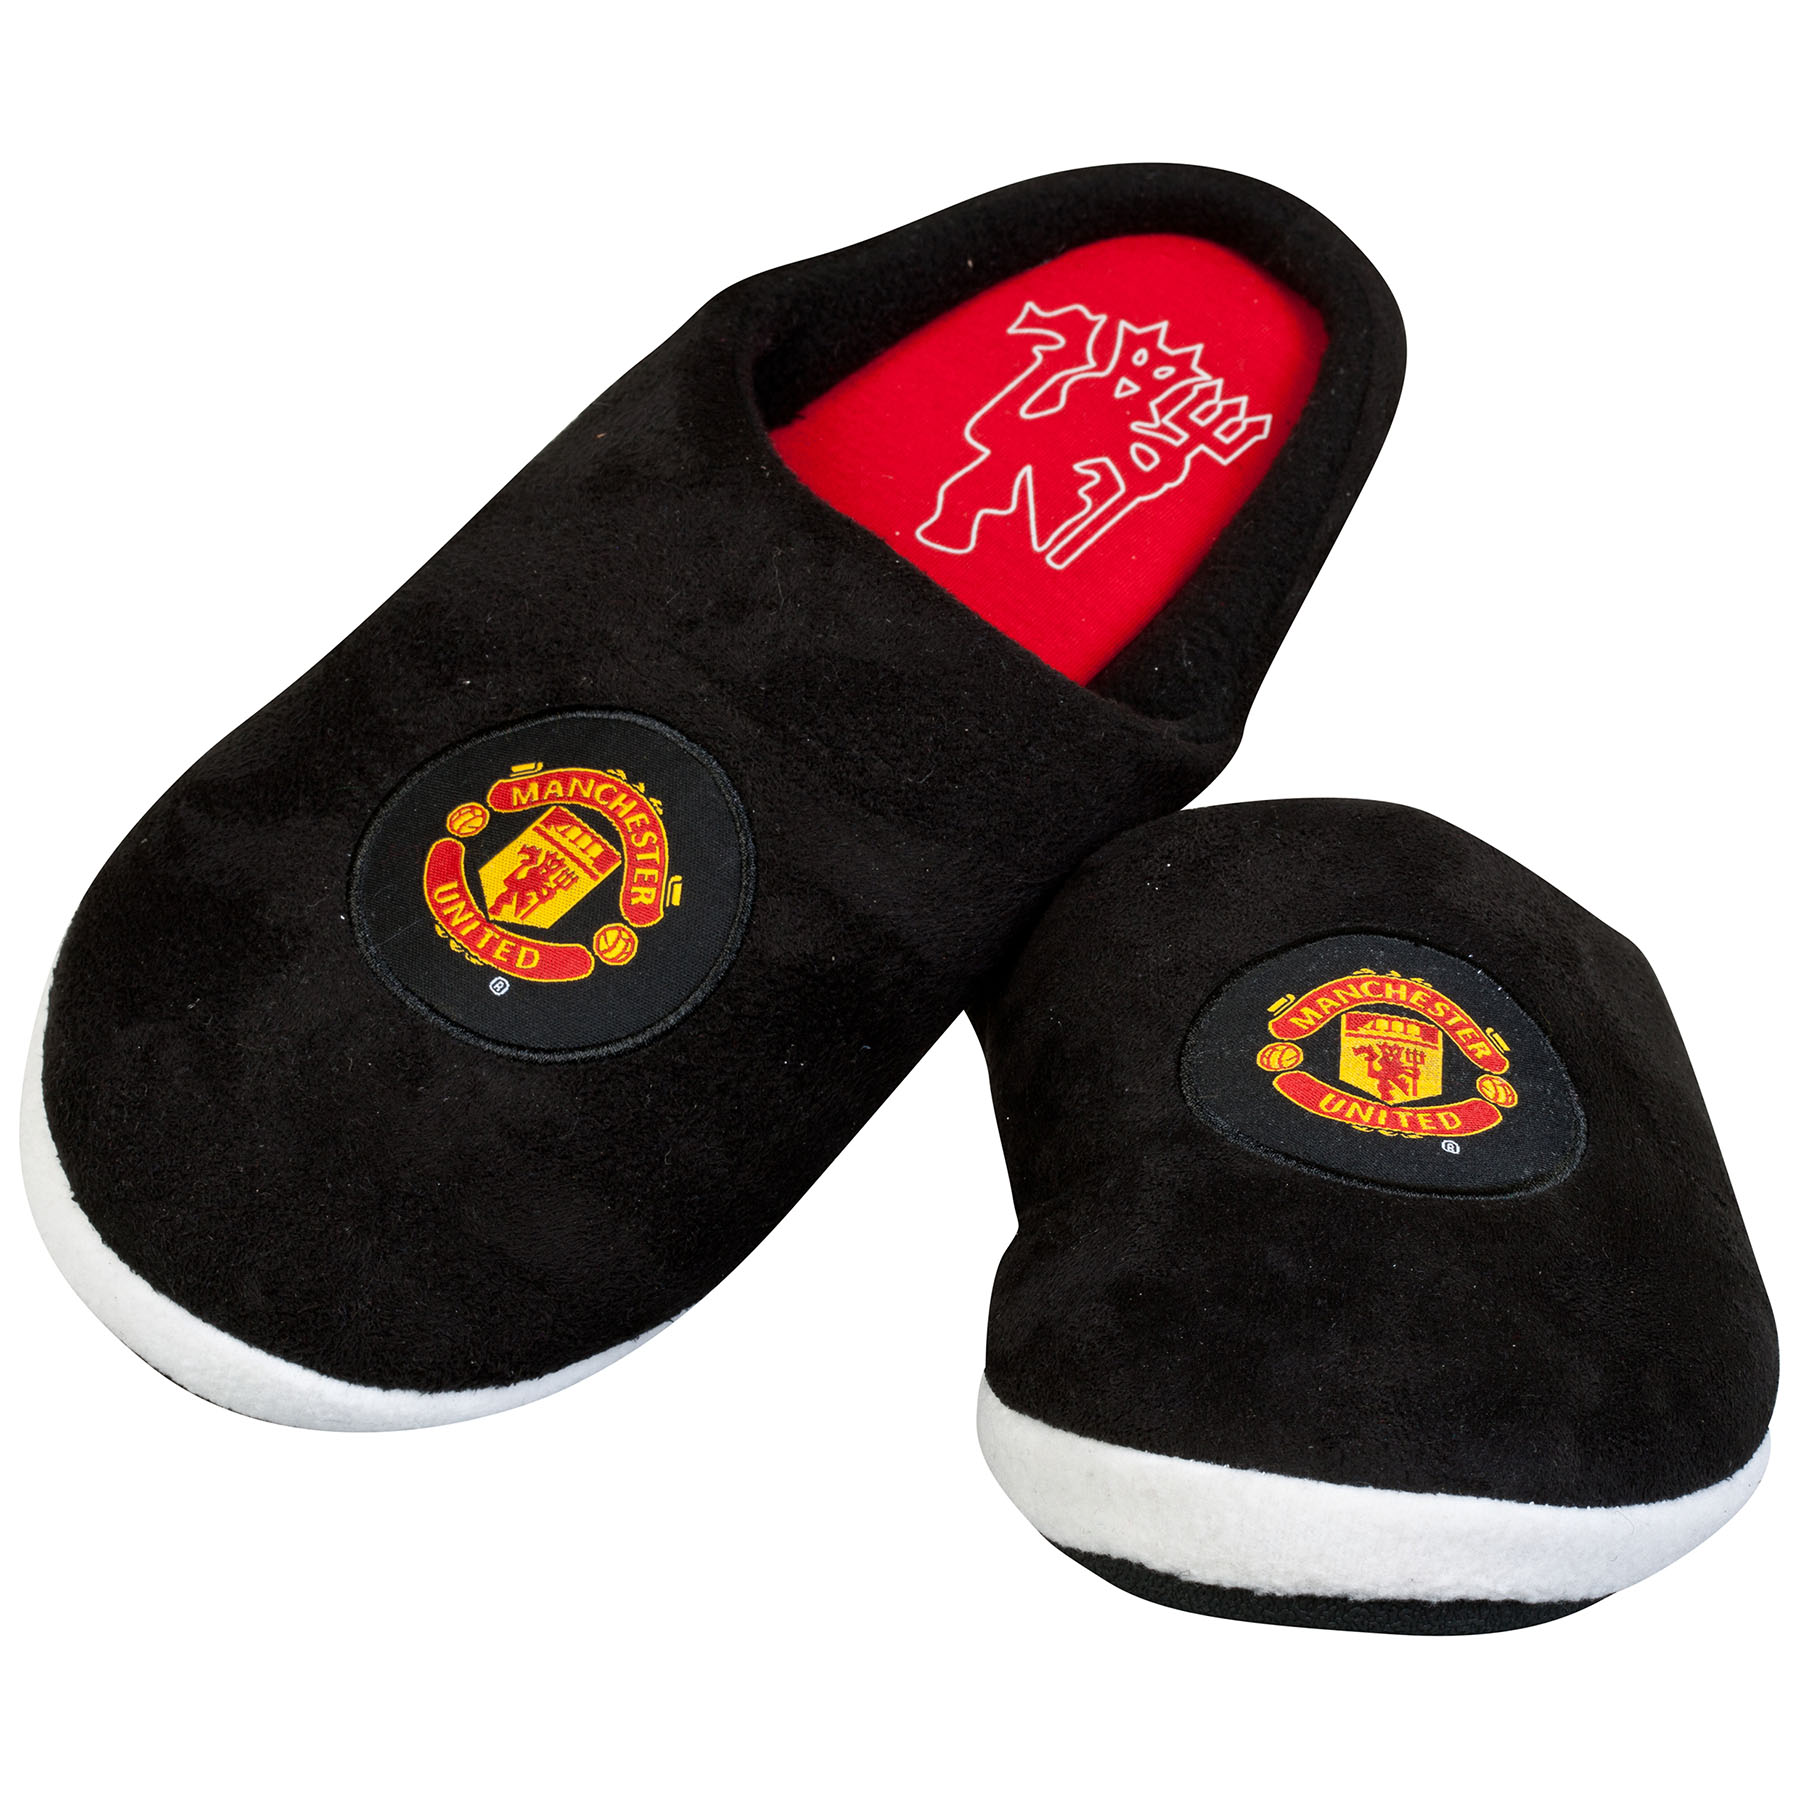 Manchester United Midfielder Slippers - Black - Mens